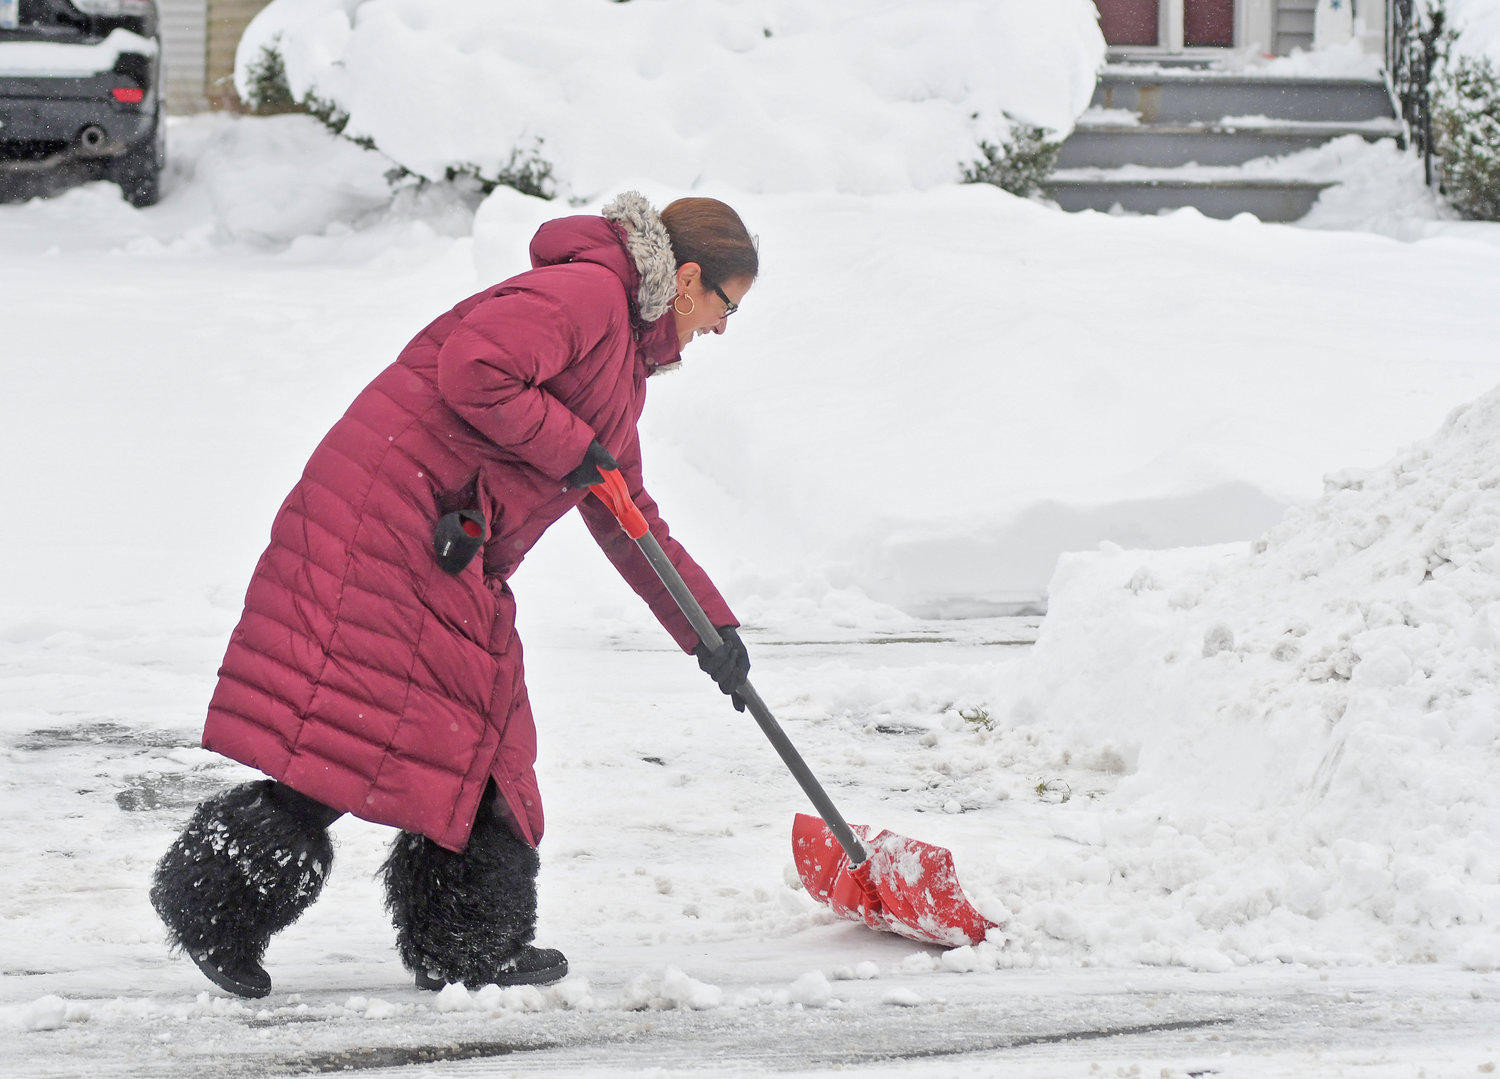 CLEANING UP — Francine Chilkotowsky, of 902 N. James St., cleans up her driveway after city plows made a pass down the roadway this morning. A winter storm dumped over a foot of snow on parts of the region from Sunday morning through this afternoon, scuttling a return to school for most area students and prompting state and local travel advisories. Occasional snow is expected to fall through tomorrow morning, and a winter storm watch, issued by the National Weather Service in Binghamton, is set to expire tonight at midnight.